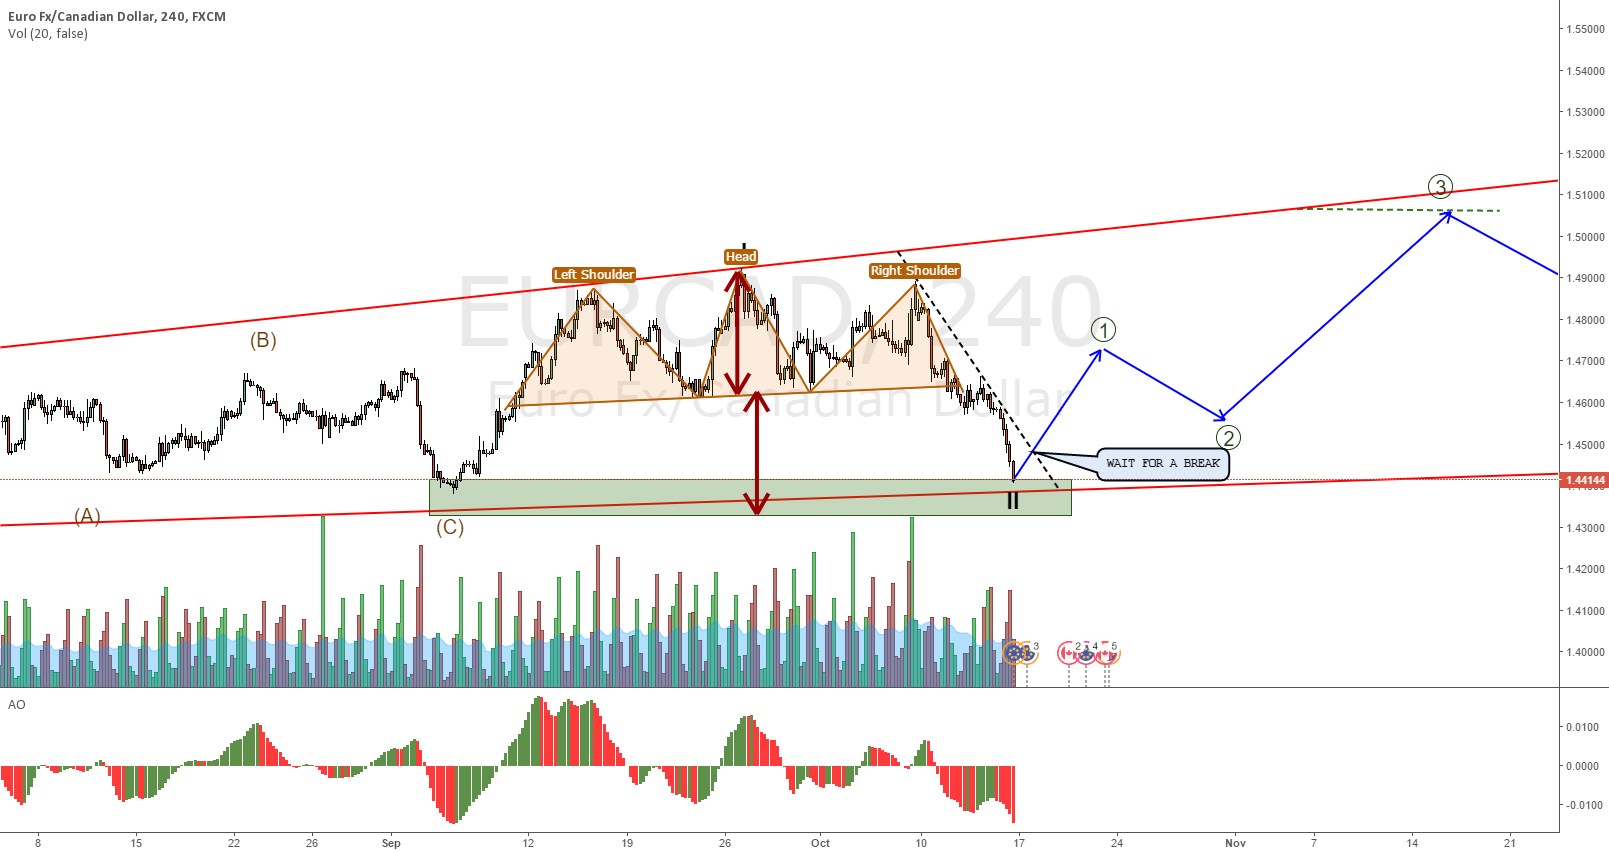 EURCAD H&S distance symetry for support